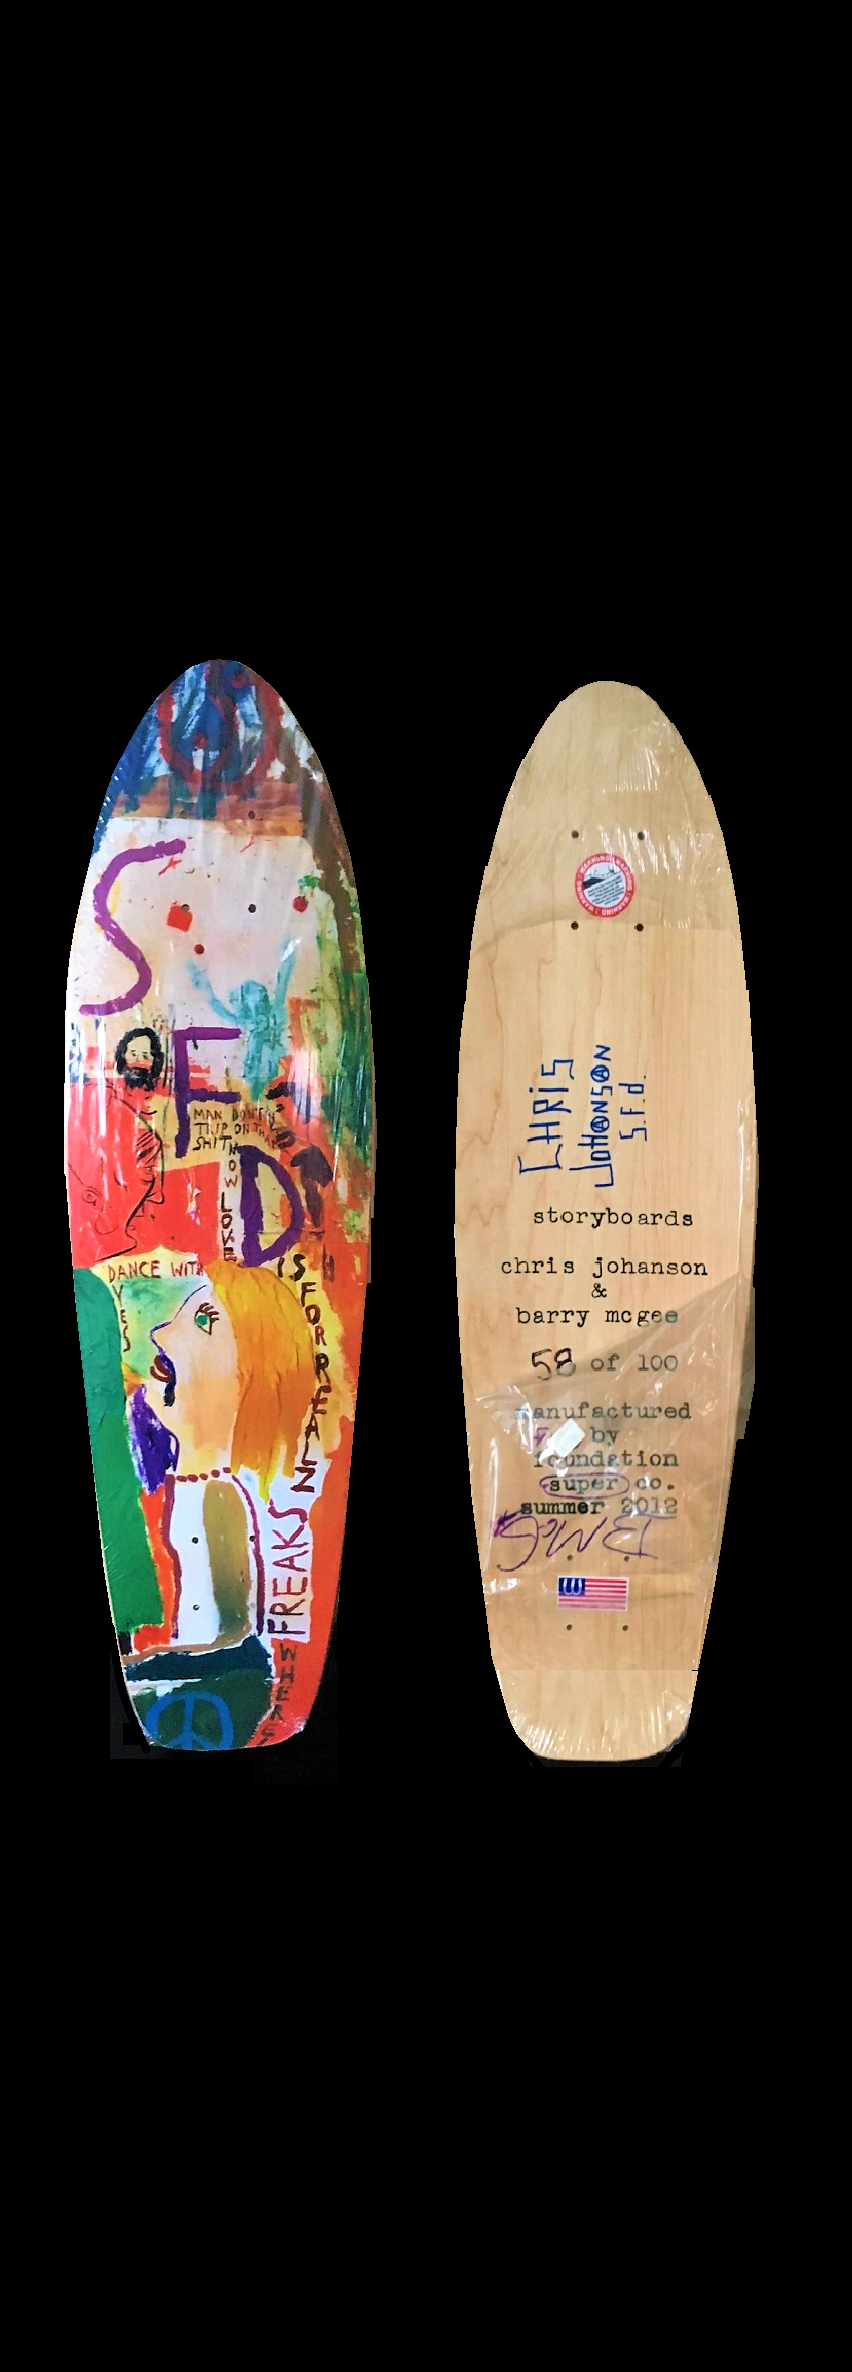 "barry McGEE & chris JOHANSON, ""And Your Friends Are My Friends"" , 2012, wood skate deck, Signed on the reverse by both artists, Numbered on the reverse, Edition 58/100, Published by The Skateroom."